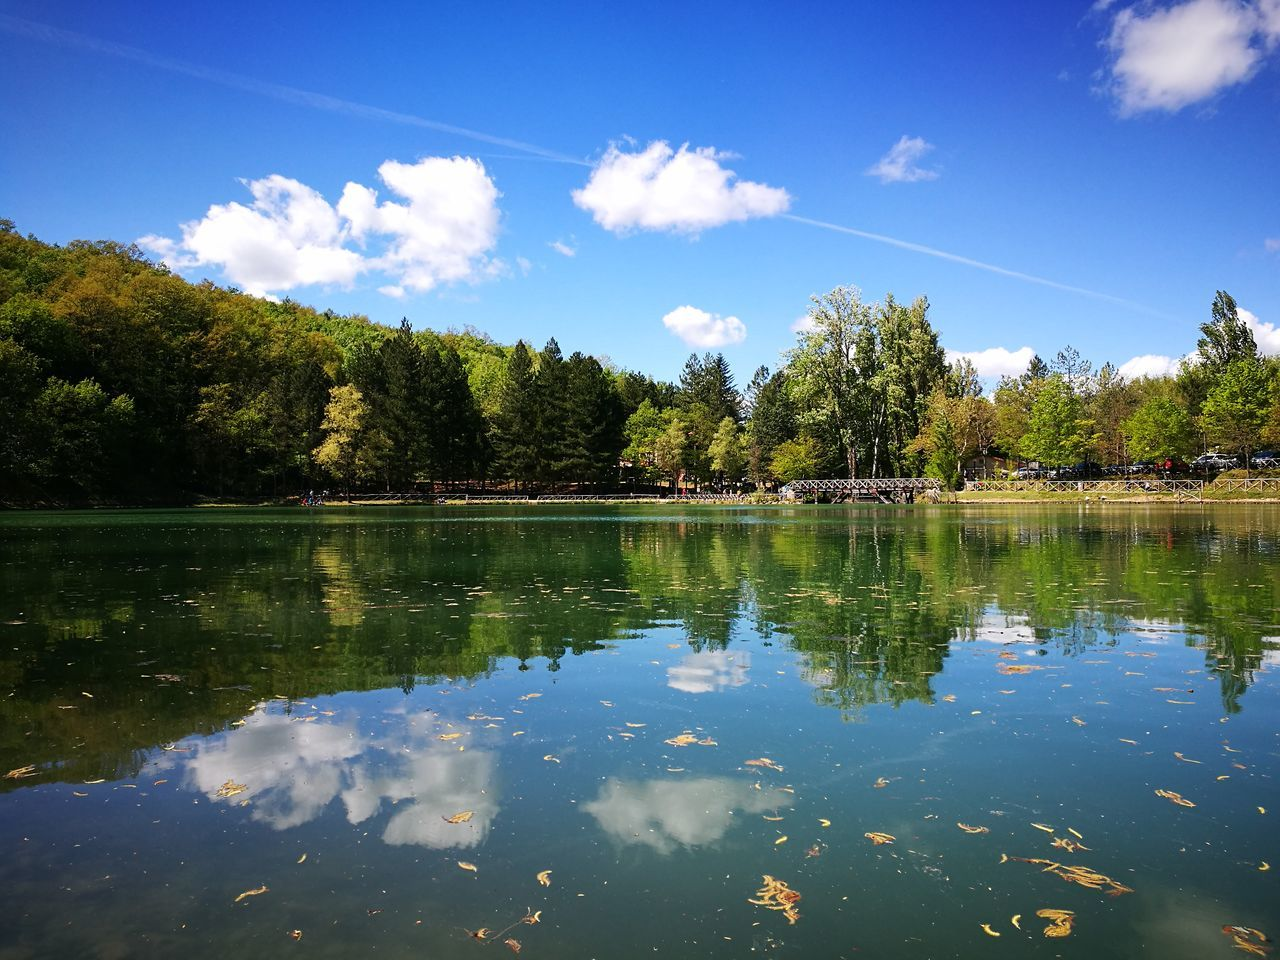 water, reflection, tree, lake, nature, beauty in nature, tranquility, sky, waterfront, tranquil scene, outdoors, scenics, no people, day, growth